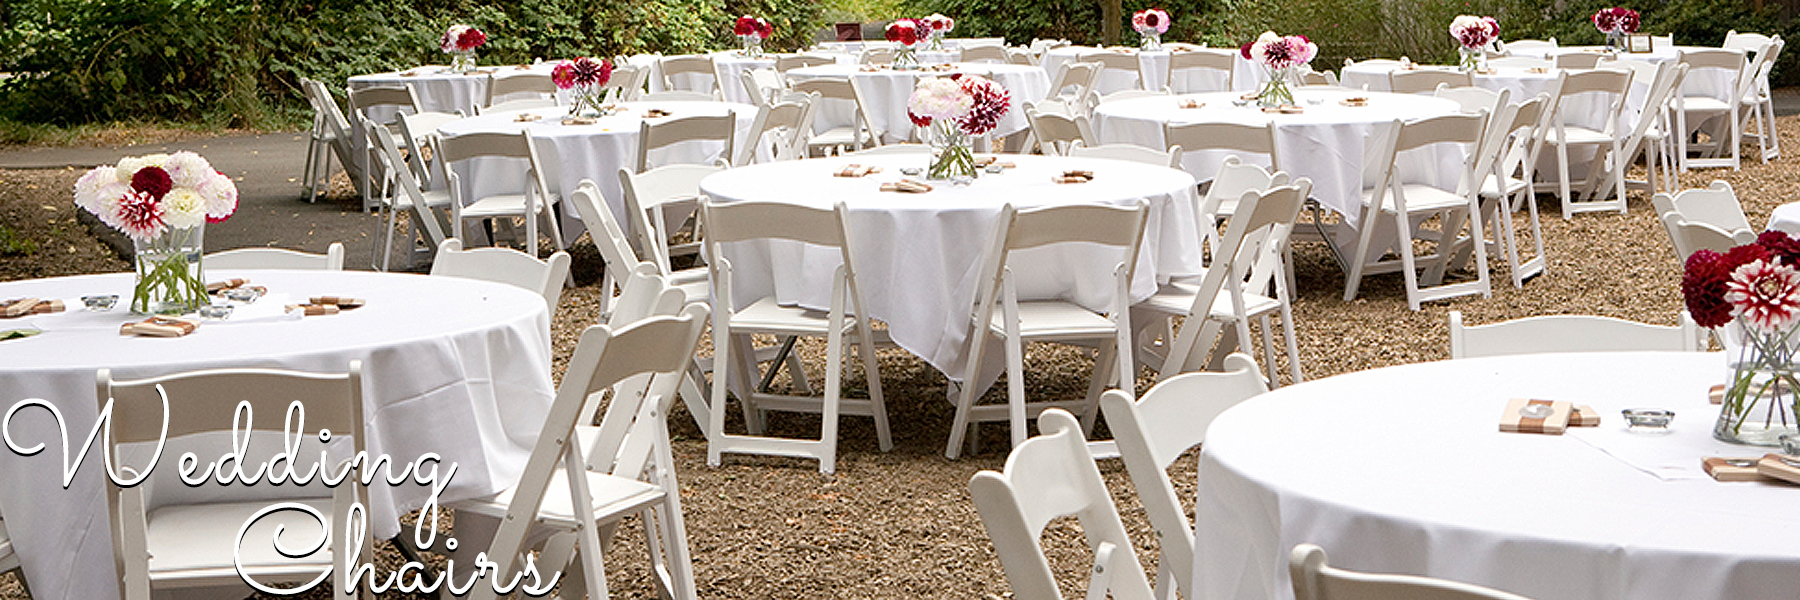 Folding Tables, Folding Chairs U0026 Chiavari Chairs   Event Furniture Sales